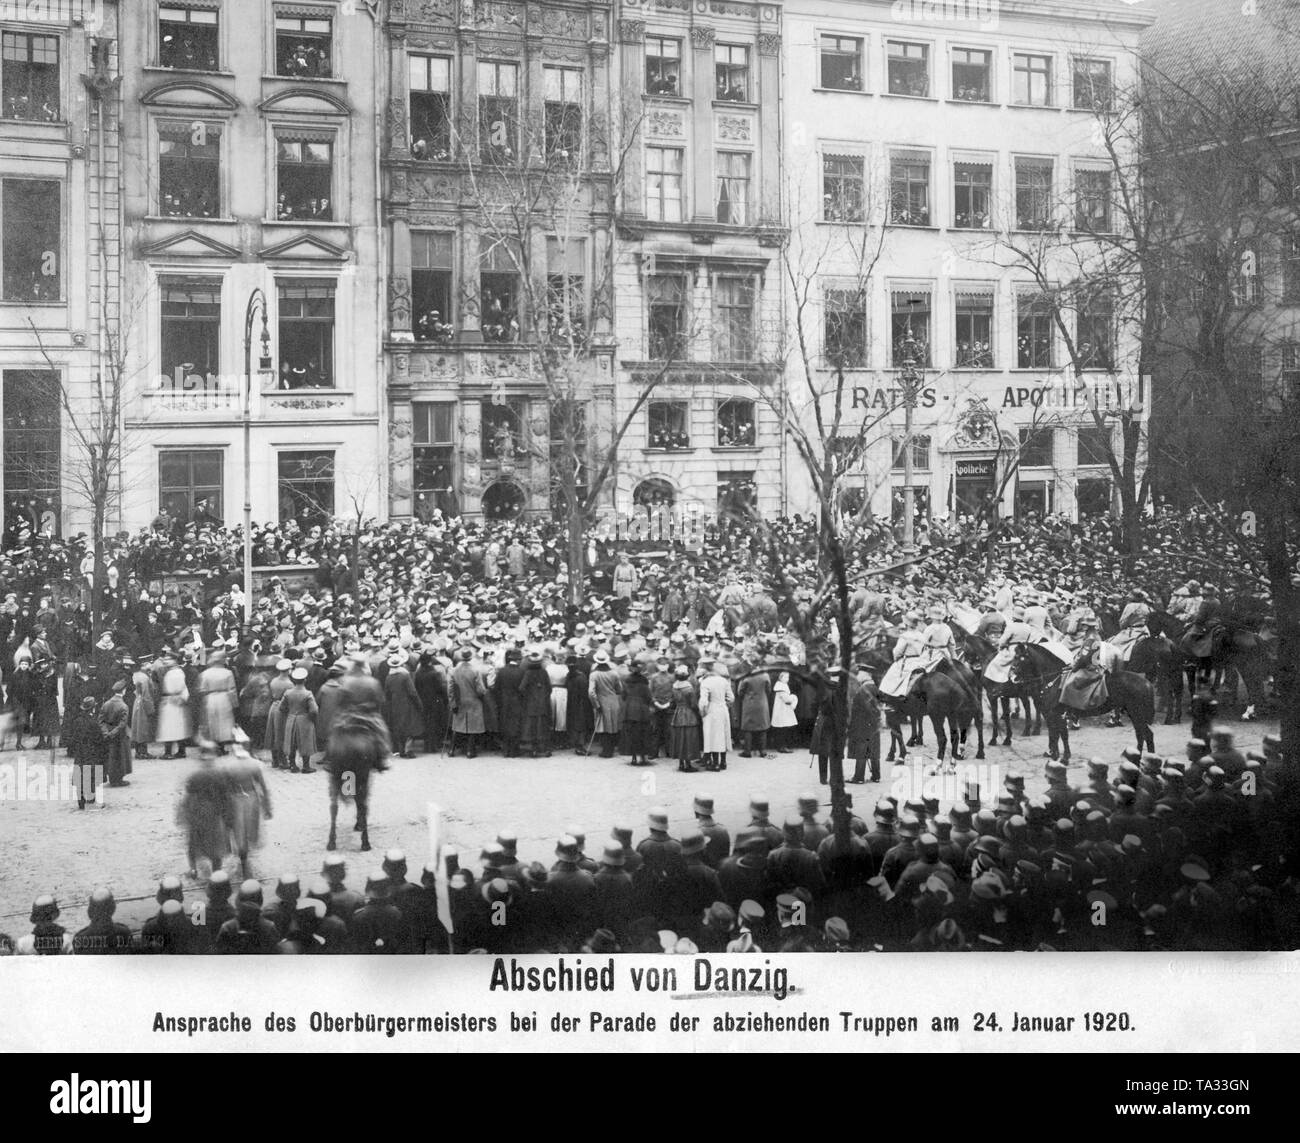 This photograph shows the address of the Lord Mayor during the withdrawal of the German troops from Danzig. The separation of Danzig from Germany took place according to the regulations of the Versailles Treaty and the League of Nations. Stock Photo